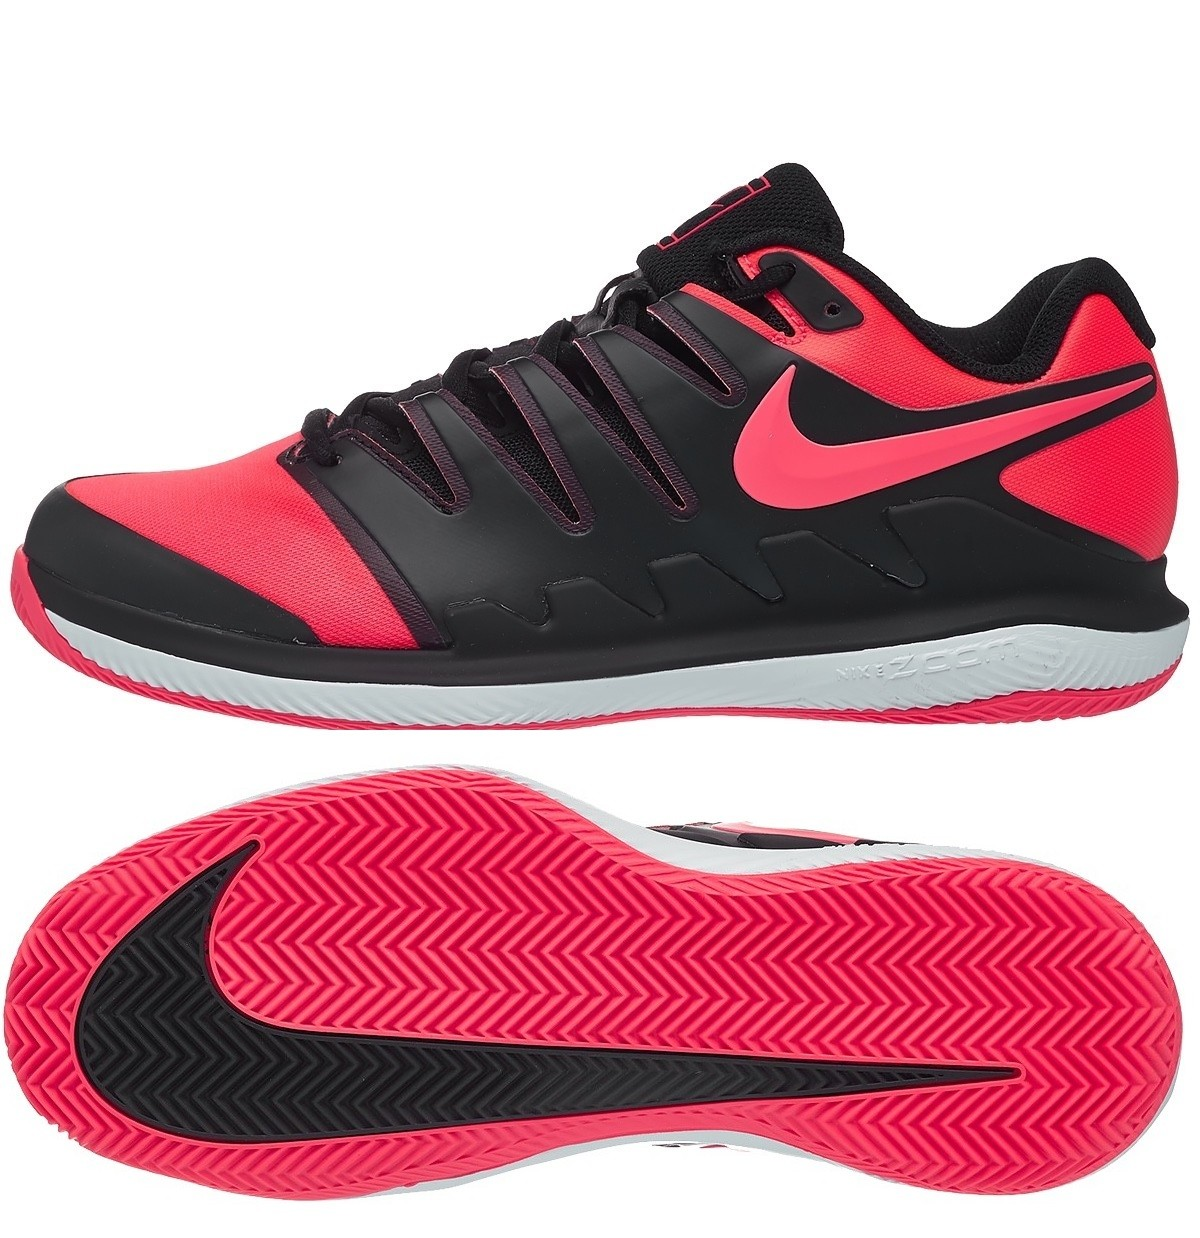 Tenisová obuv Nike Air Zoom Vapor X Clay AA8021-006 black   polar red b3588111ab